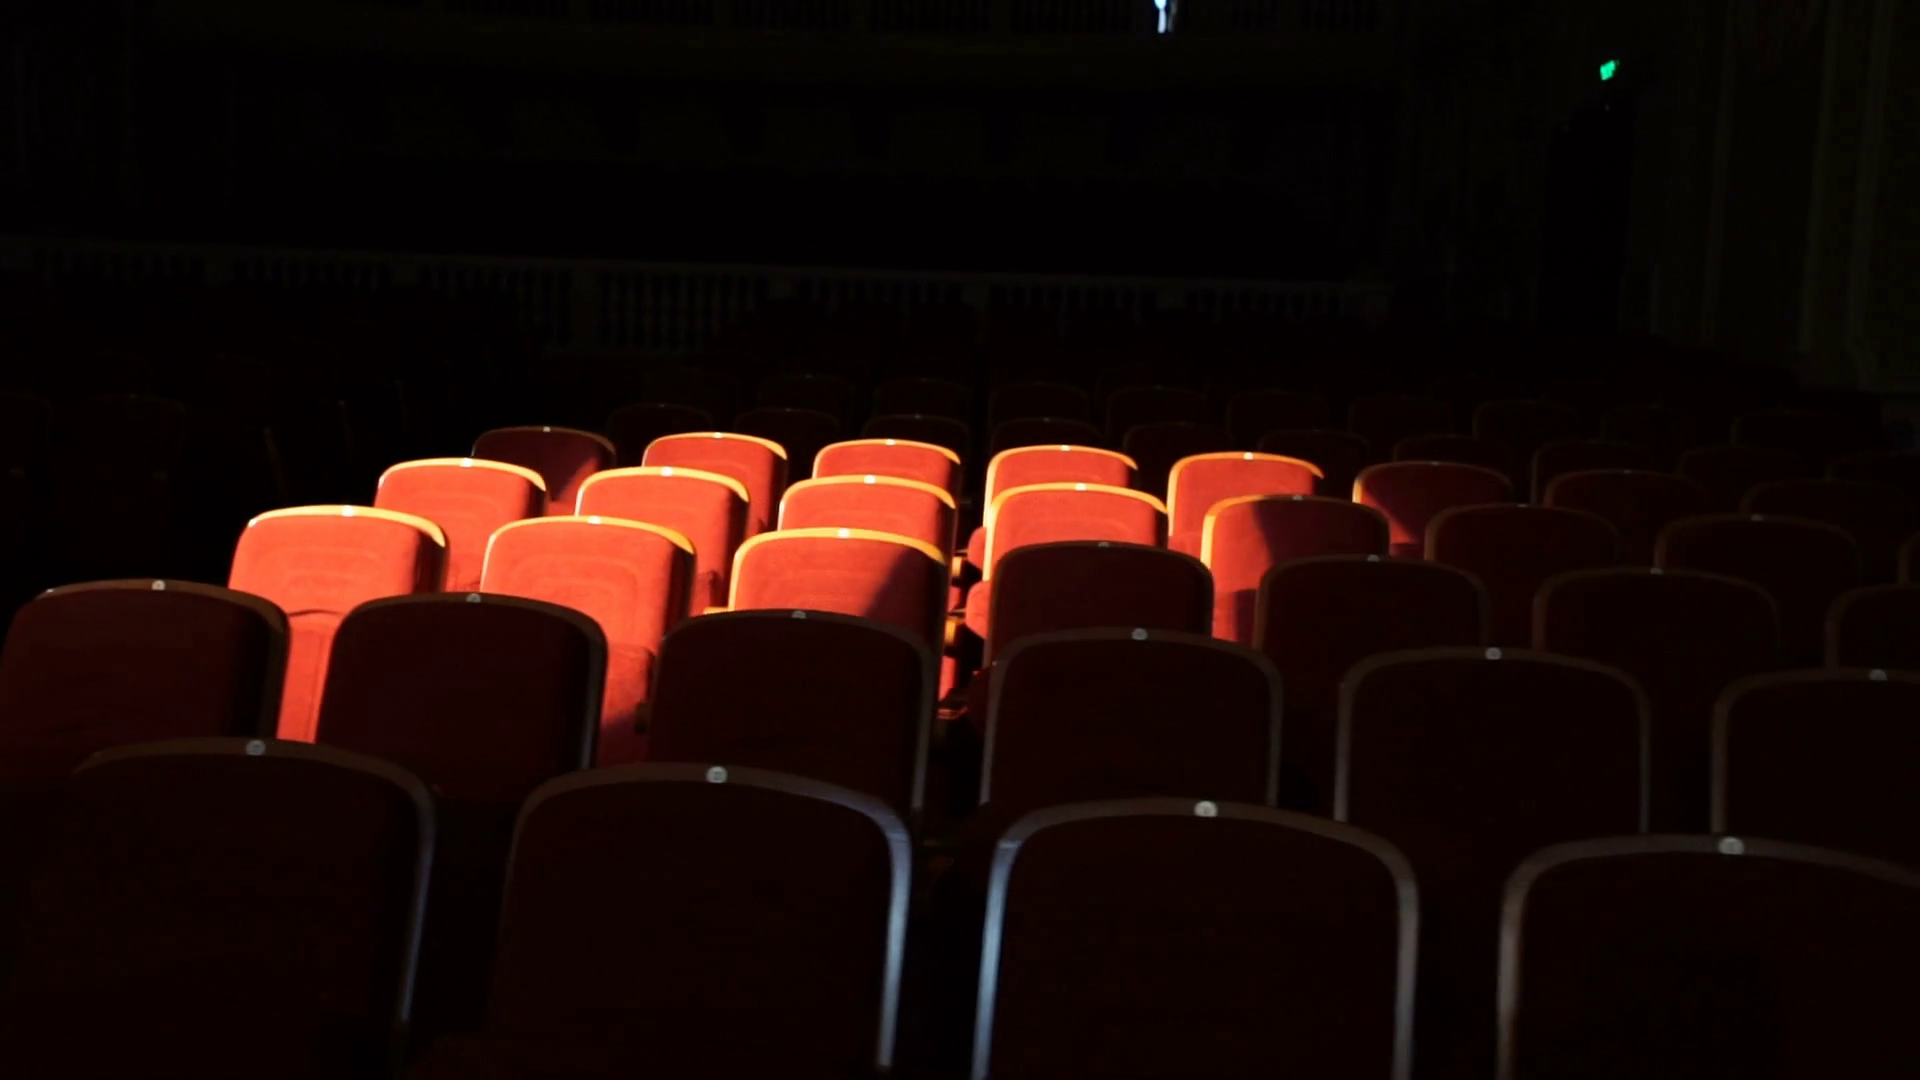 empty-theater-seats-ready-for-the-big-show_h8gys8ntmx_thumbnail-full09.png